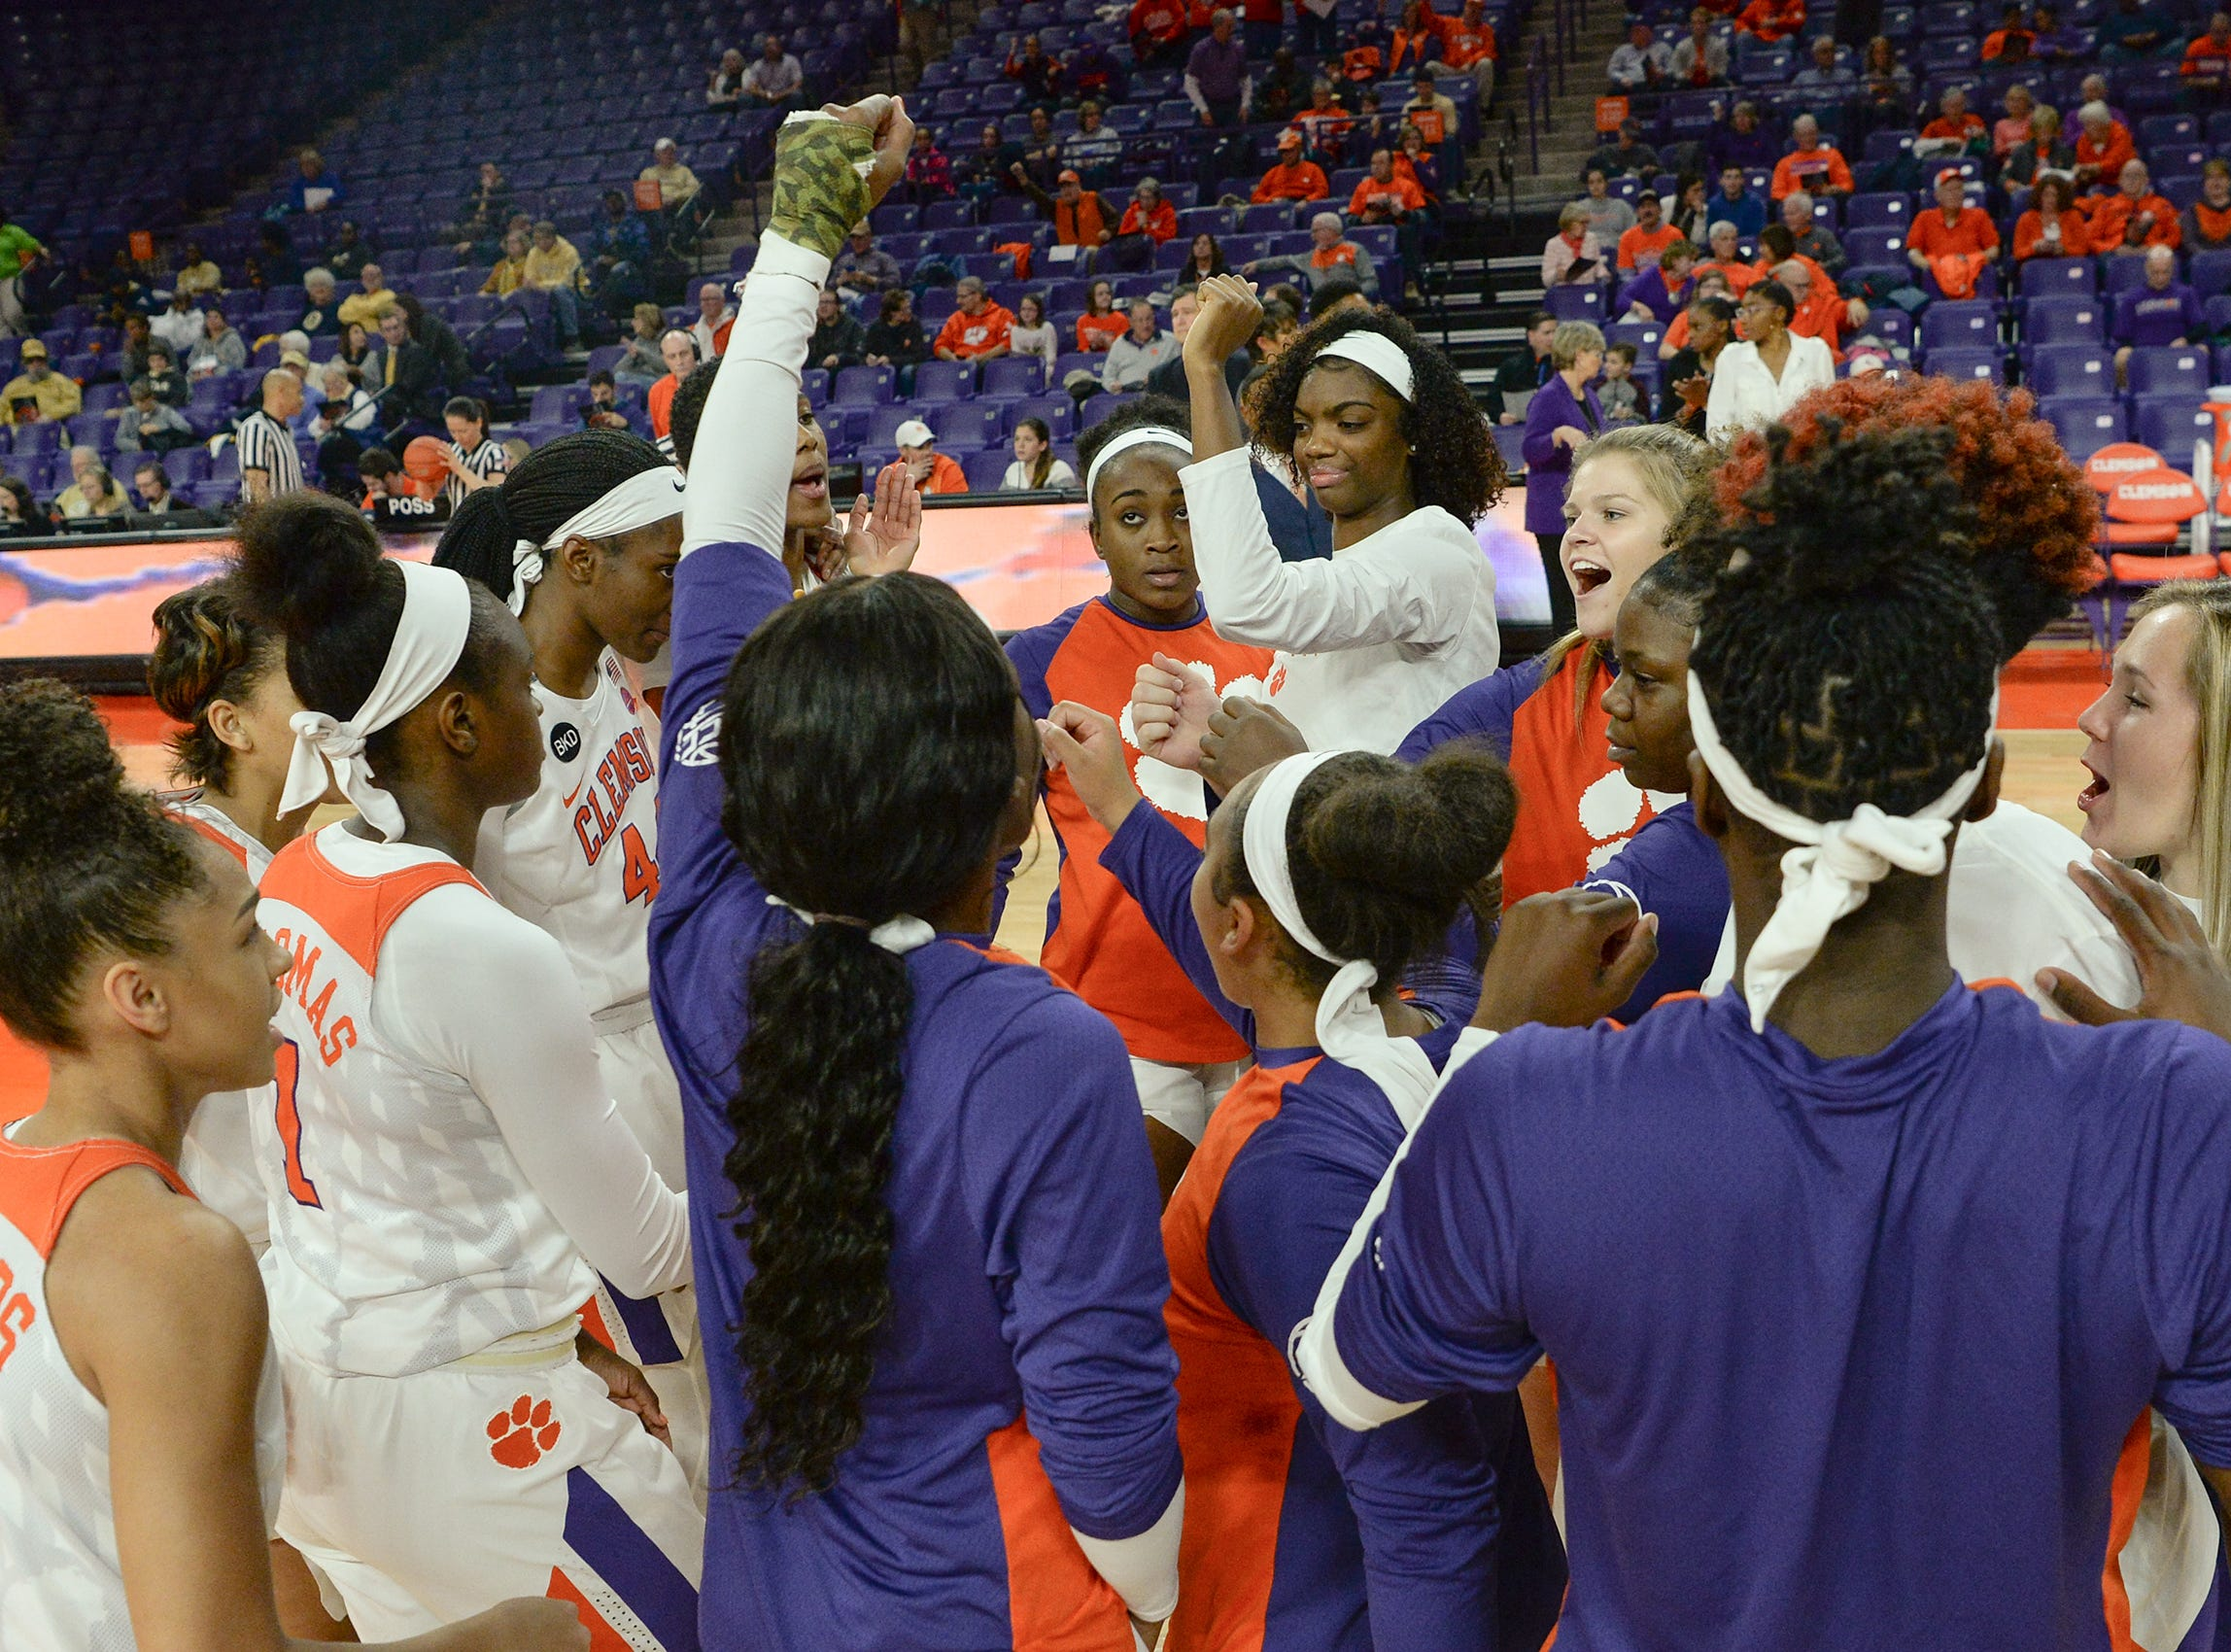 Clemson player gather before the first half of the Clemson and Georgia Tech women's game at Littlejohn Coliseum in Clemson Thursday, January 17, 2019. Clemson won 71-61.